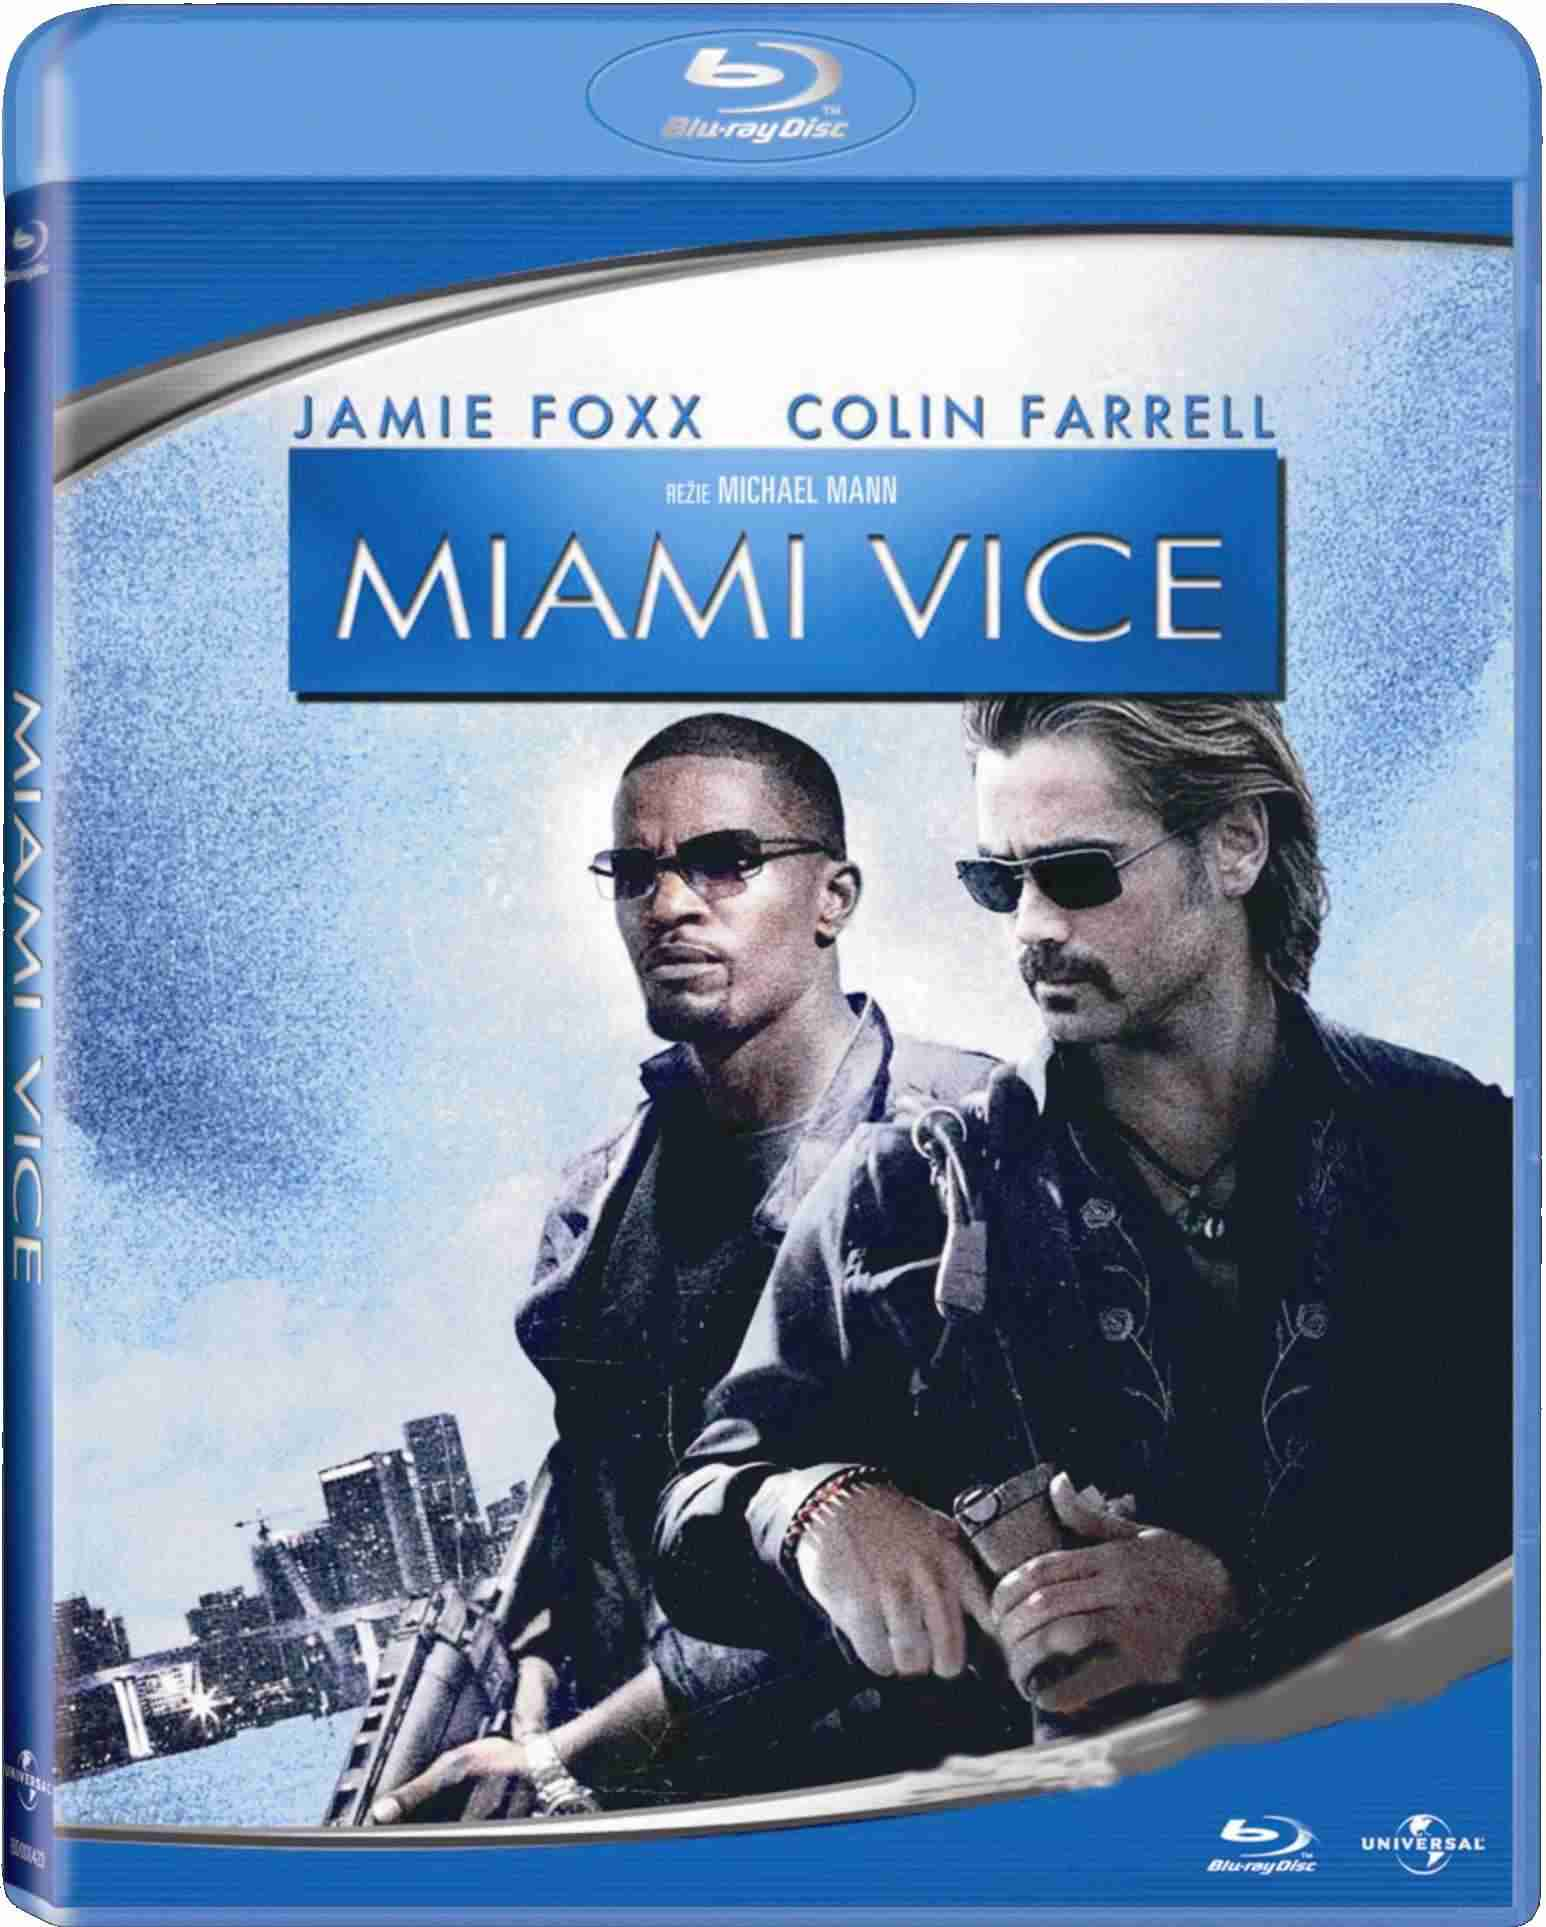 MIAMI VICE - Blu-ray